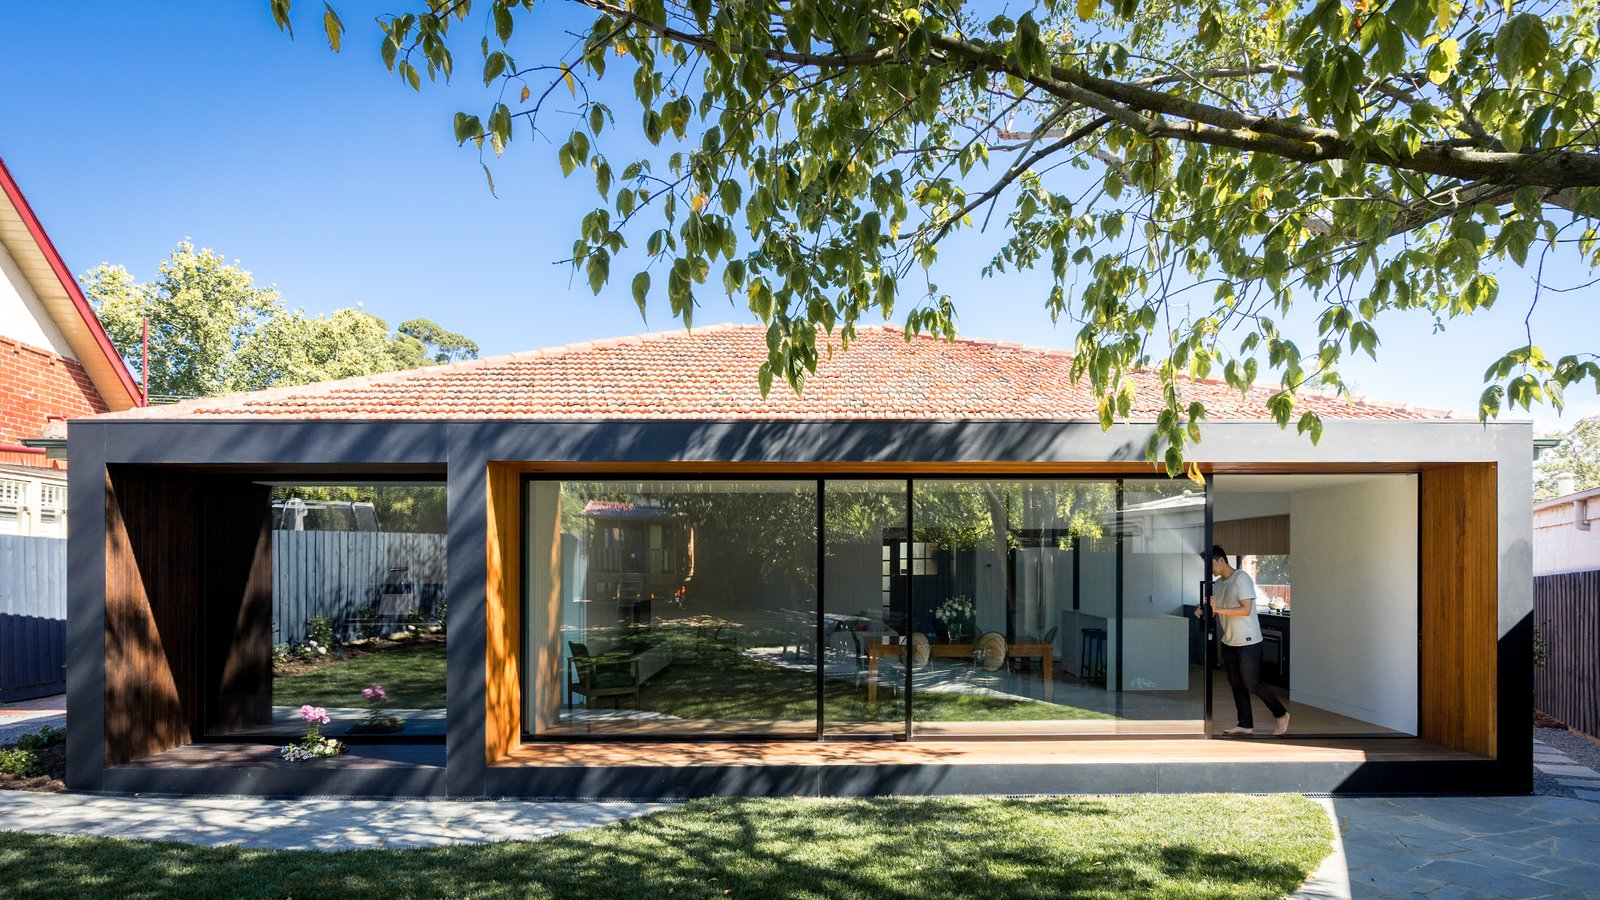 Outdoor, Back Yard, Small Patio, Porch, Deck, and Grass To make the home look and feel larger, the MODO team ironically made the new house smaller in size.    Photo 4 of 9 in A Melbourne Home Decreases in Size to Amp Up Its Outdoor Connection